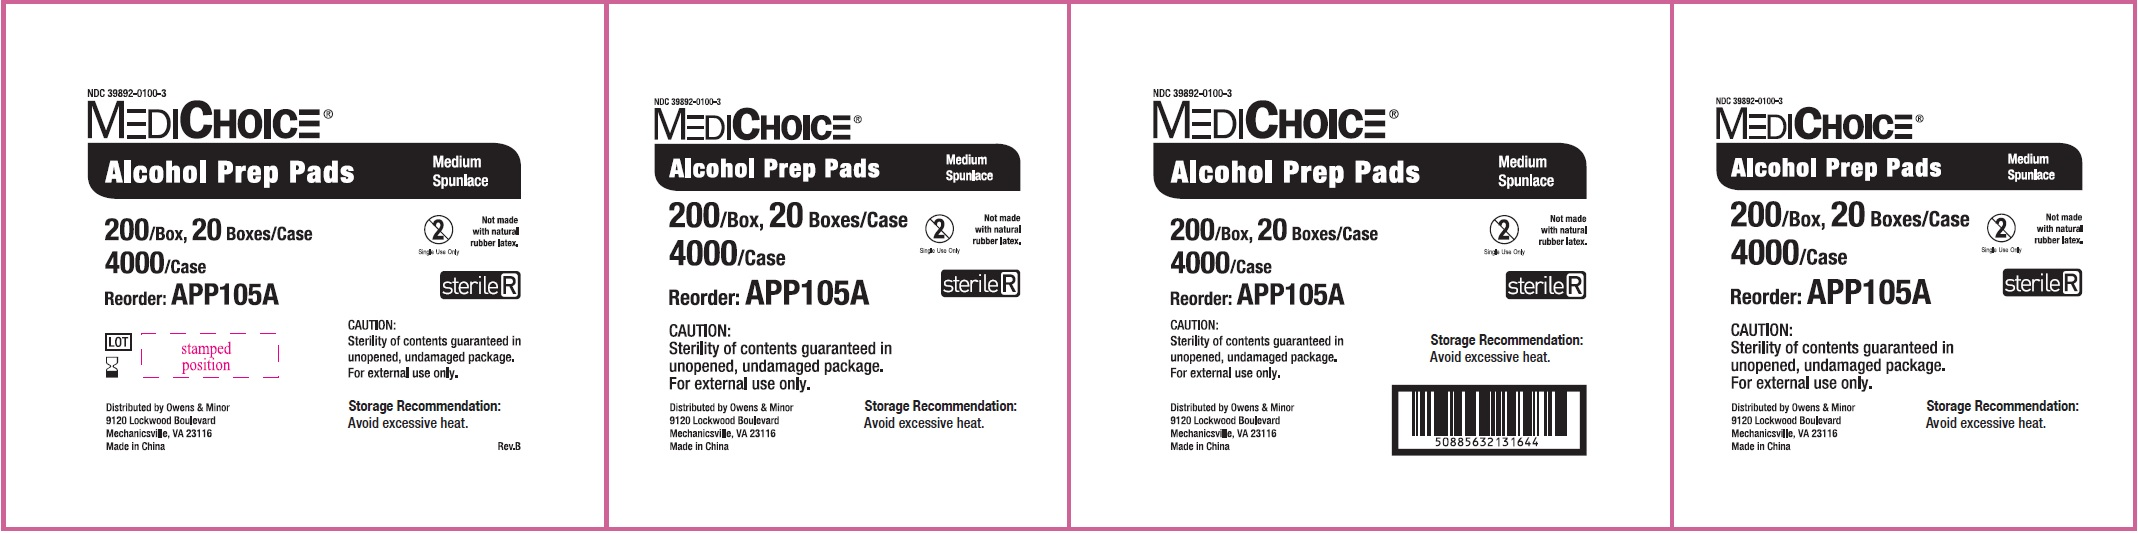 NDC - 39892-0100-3 - Alcohol Prep Pad - Box3